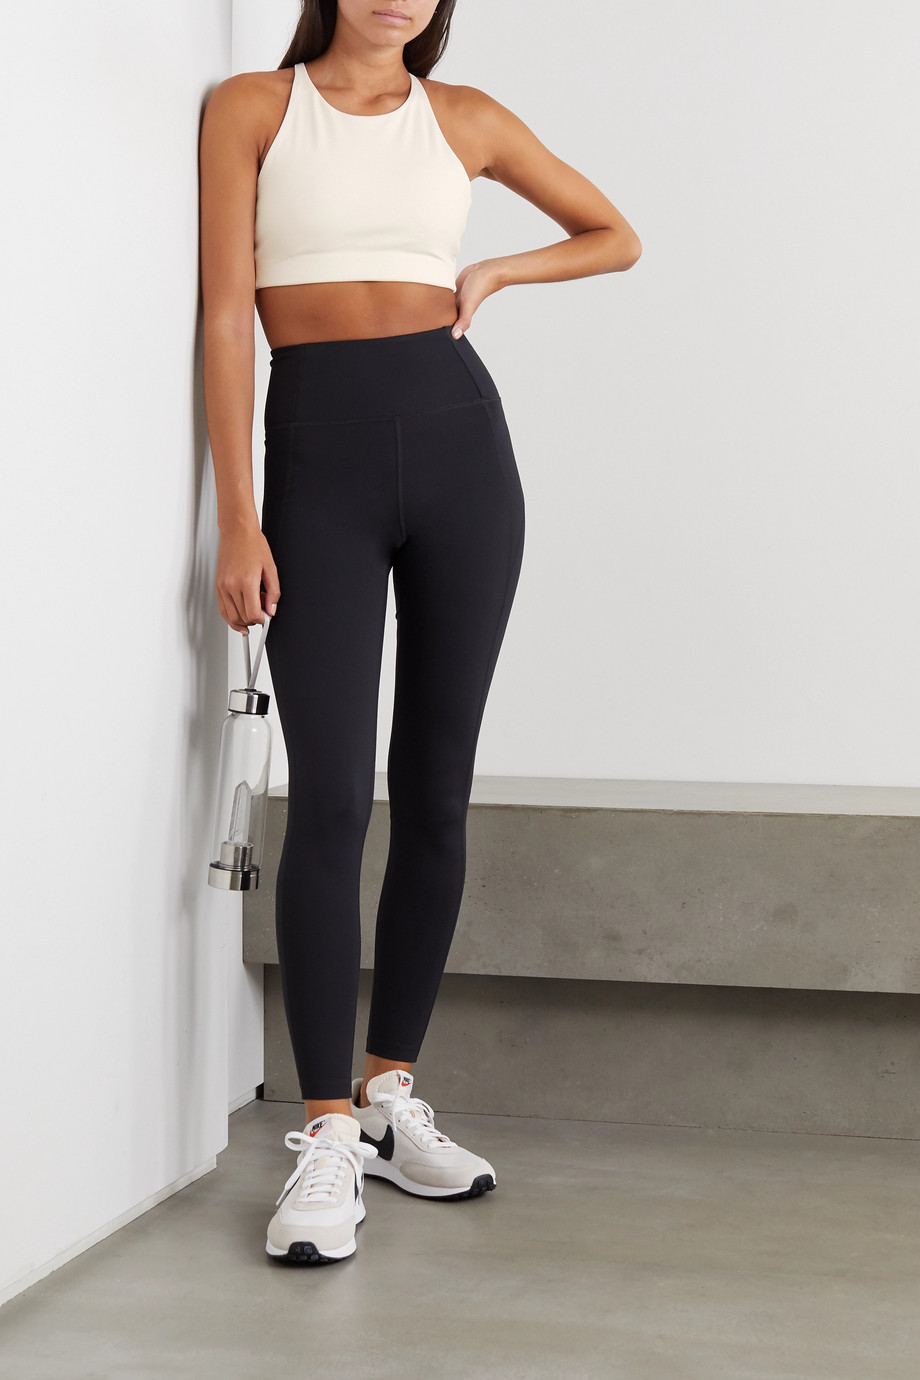 Girlfriend Collective Topanga stretch sports bra